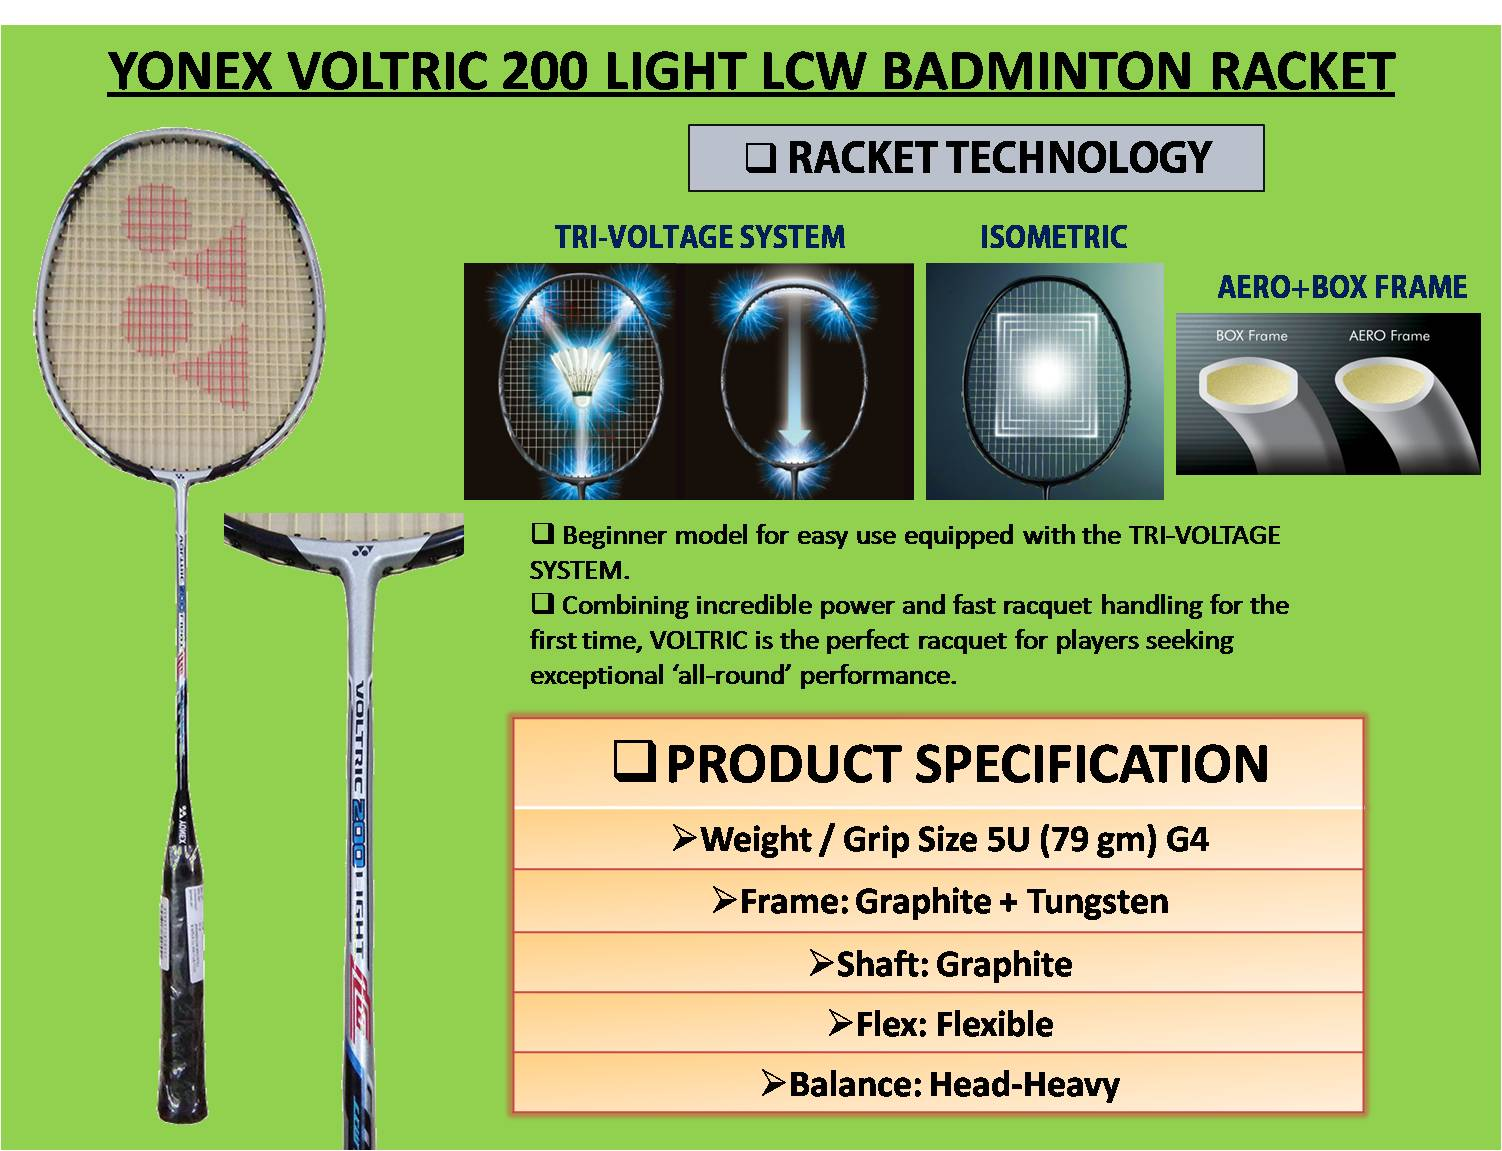 Yonex Voltric 200 Light LCW Badminton Racket